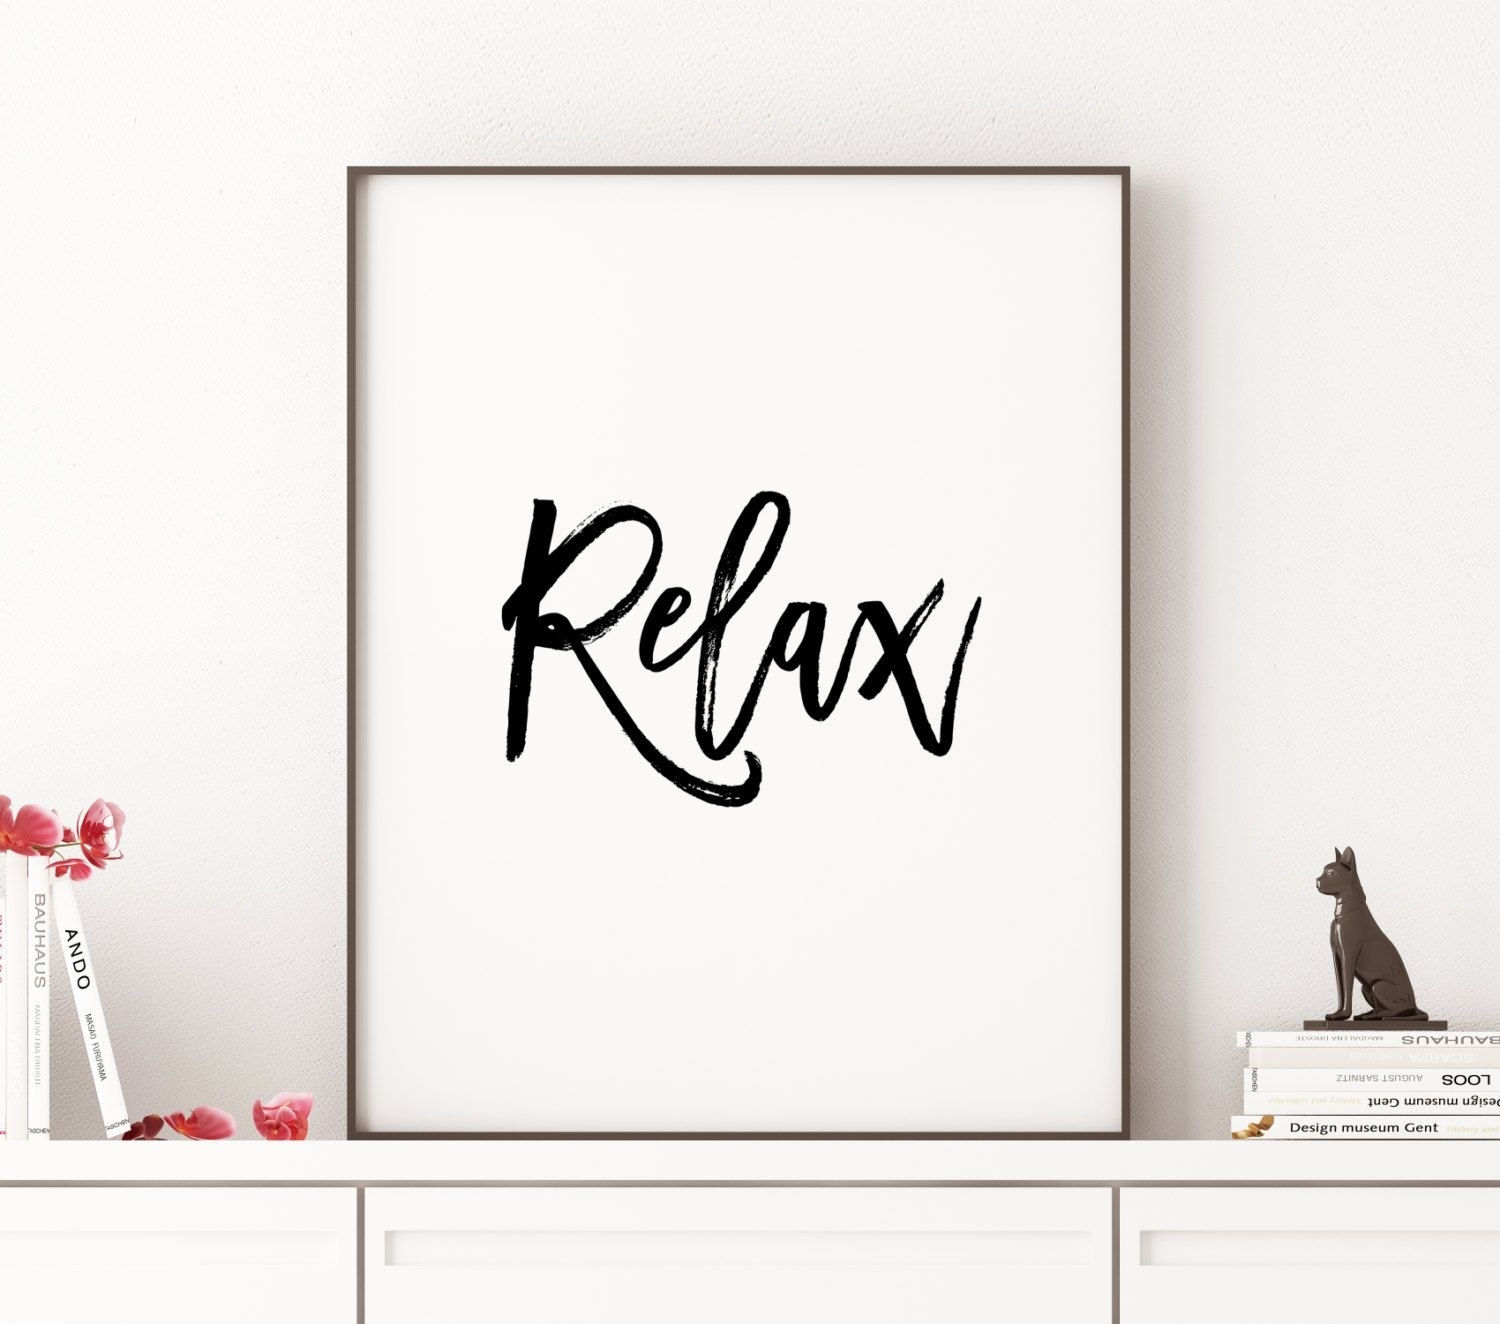 Printable Art Relax Office Wall Art Typographythecasanova In Latest Relax Wall Art (View 7 of 20)